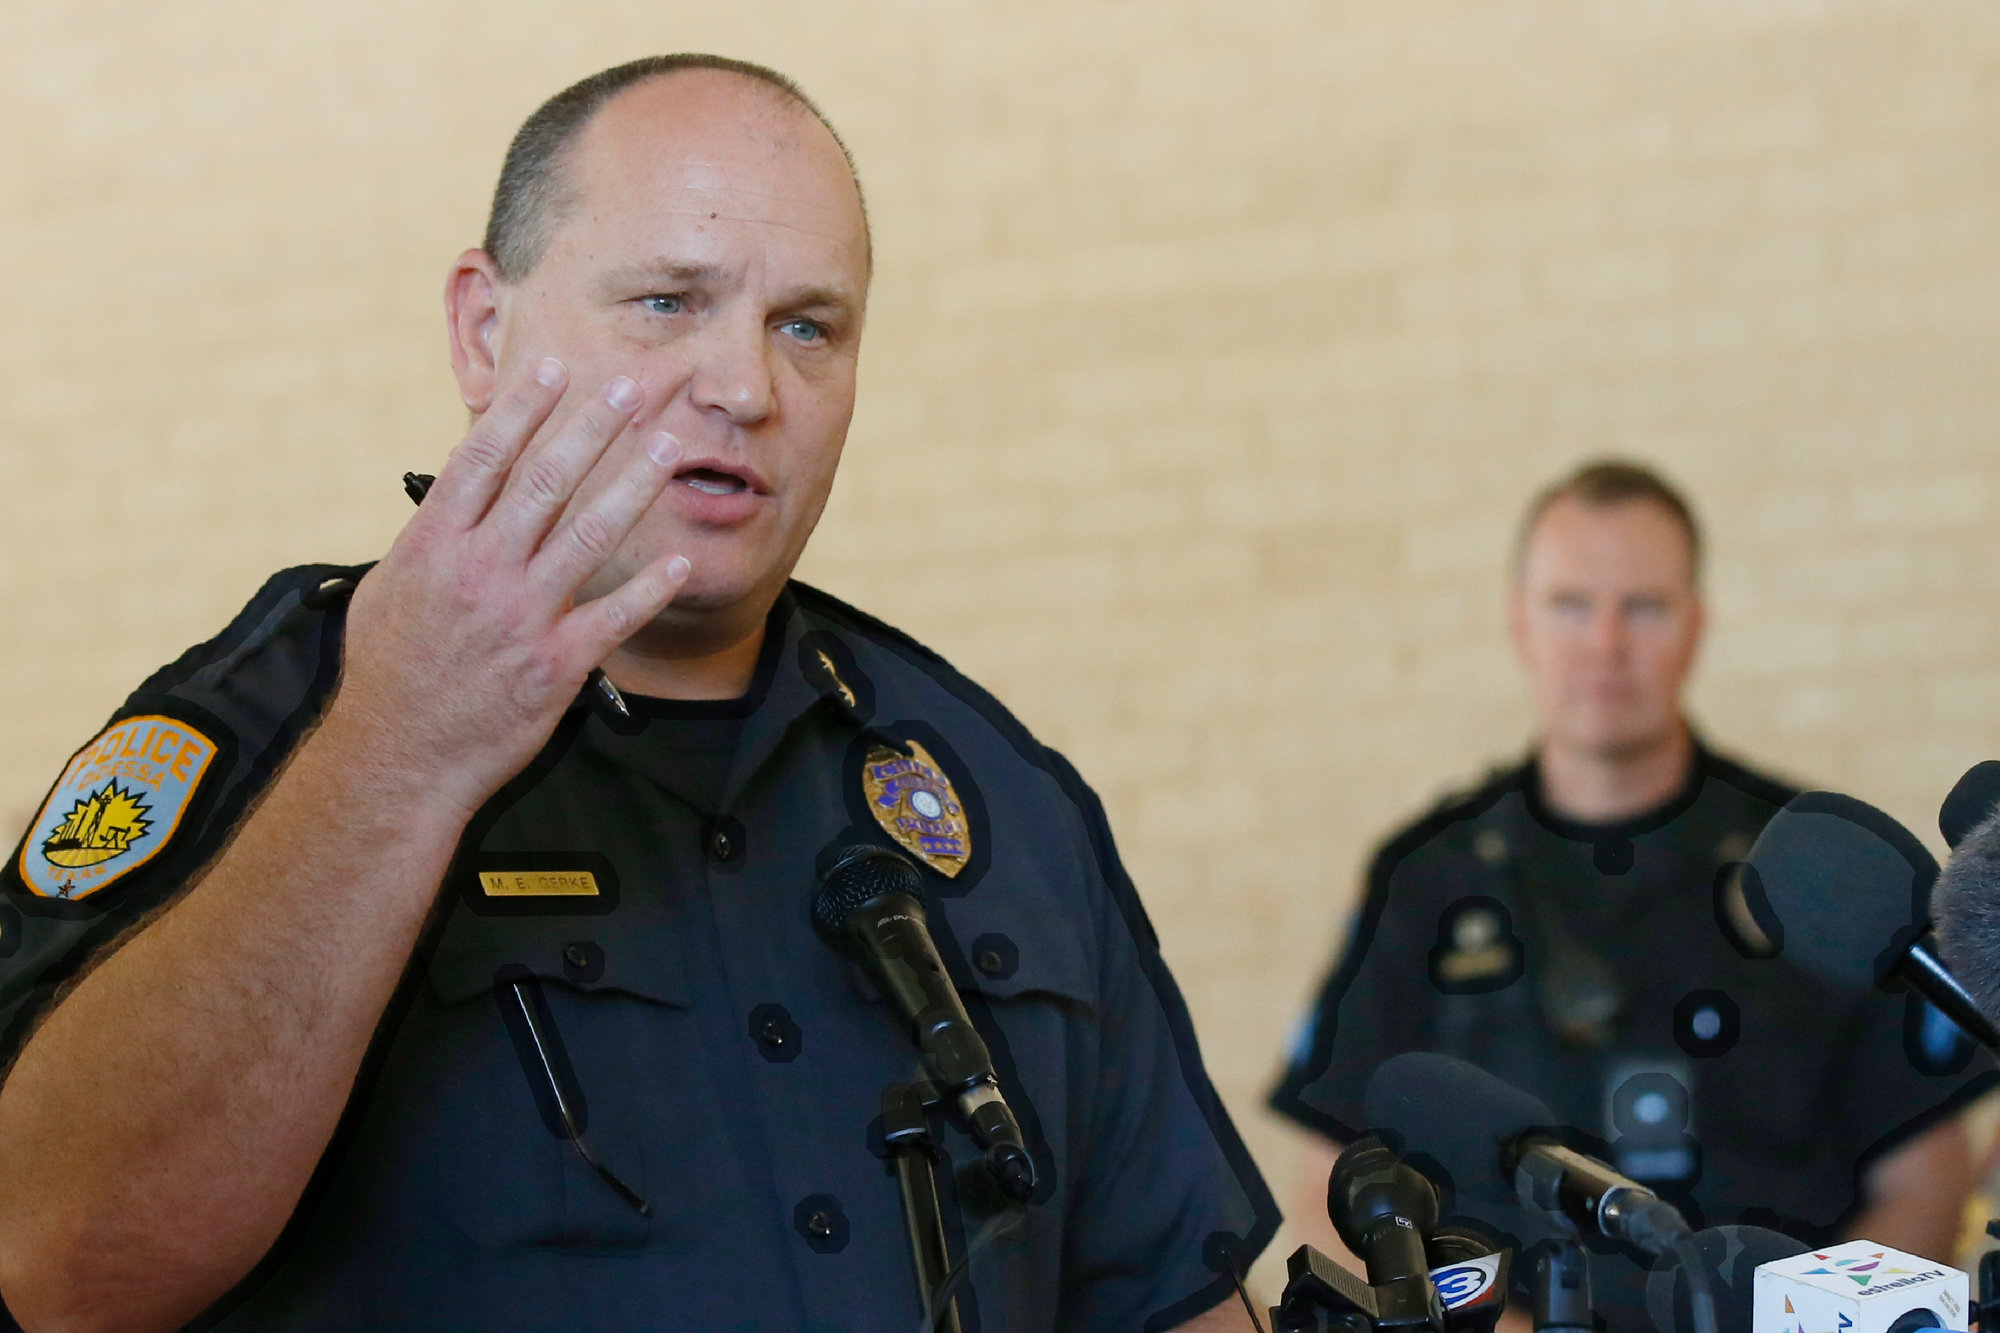 Odessa Police Chief Michael Gerke speaks during a news conference Monday in Odessa, Texas. The gunman in a spate of violence after a traffic stop in West Texas had just been fired from his job and called both police and the FBI before the shooting began, authorities said.